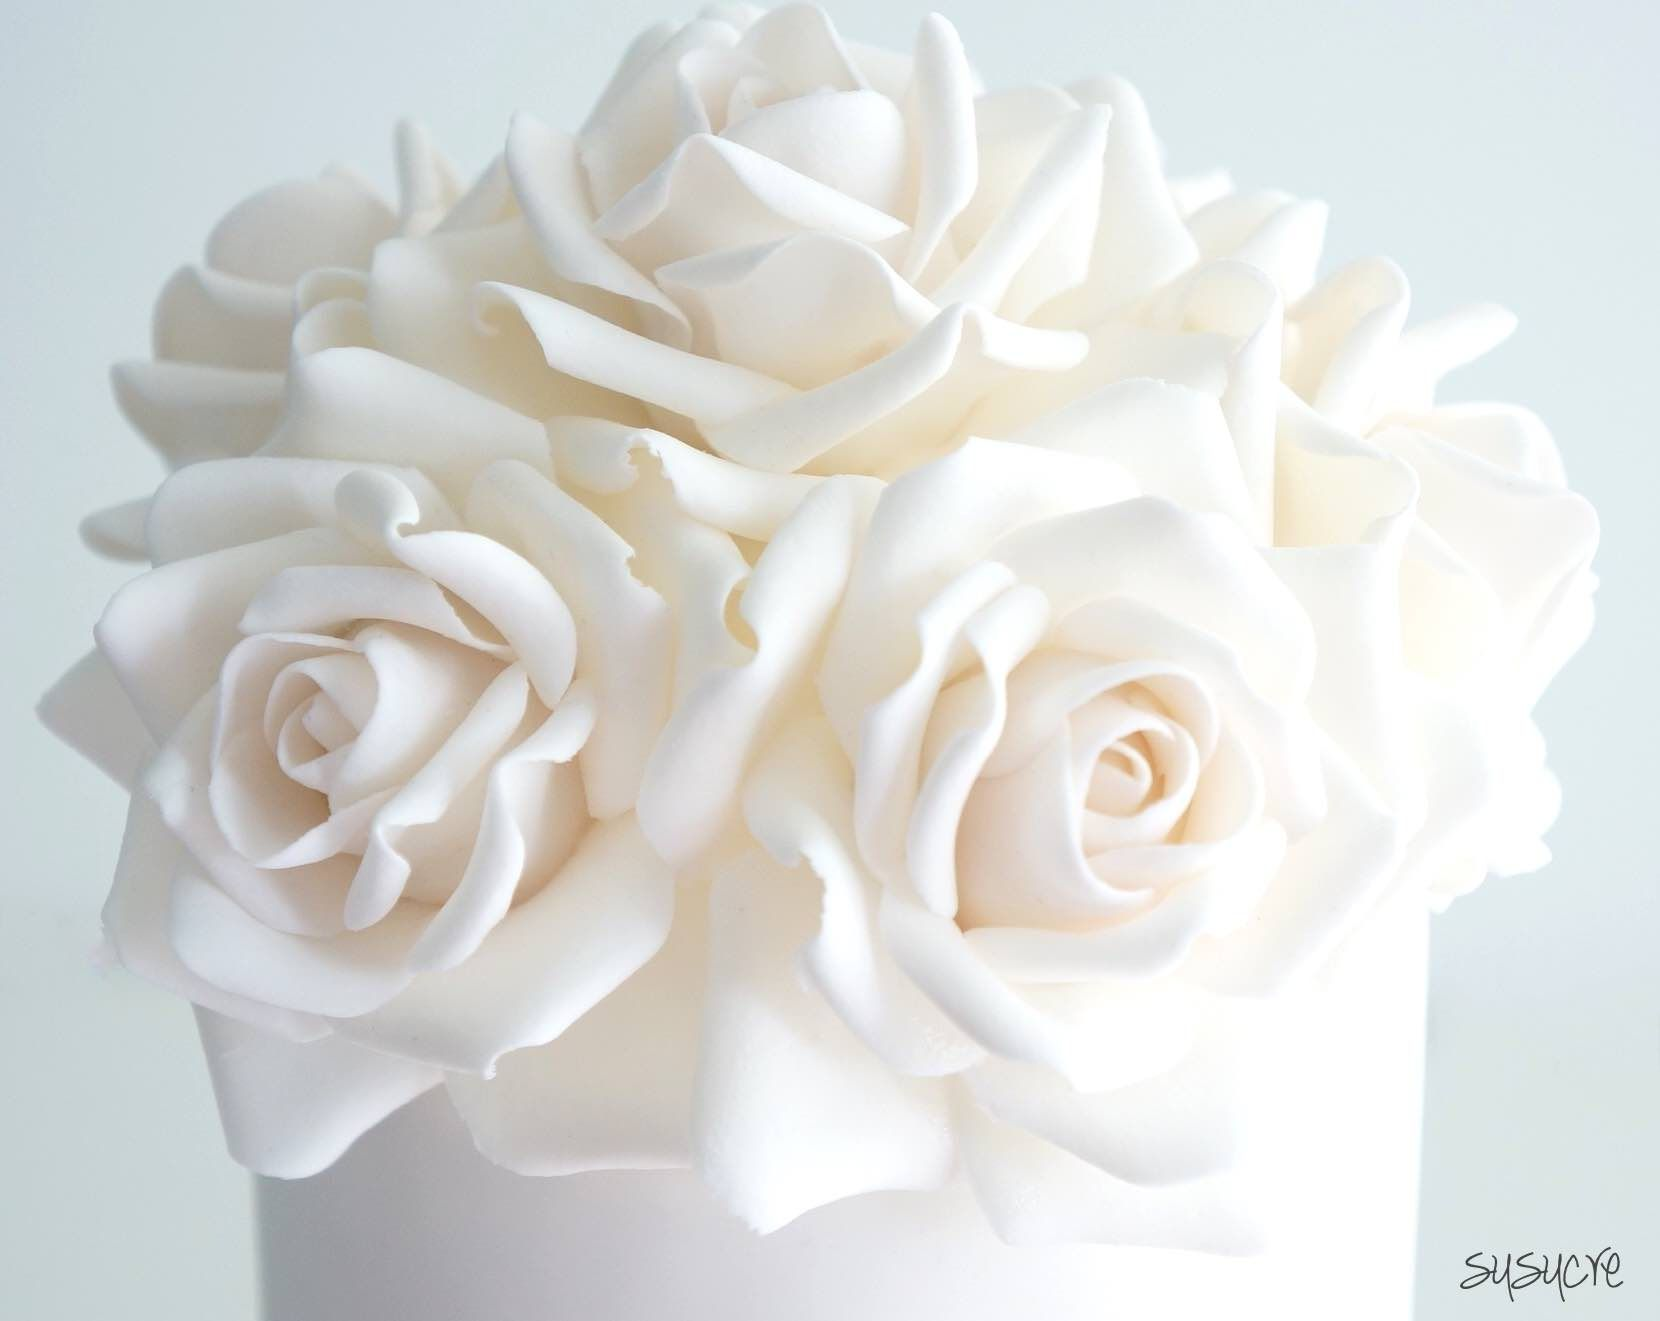 White Rose Wedding Cake With Lots Of Sugar Roses And Flower Topper Perfect For